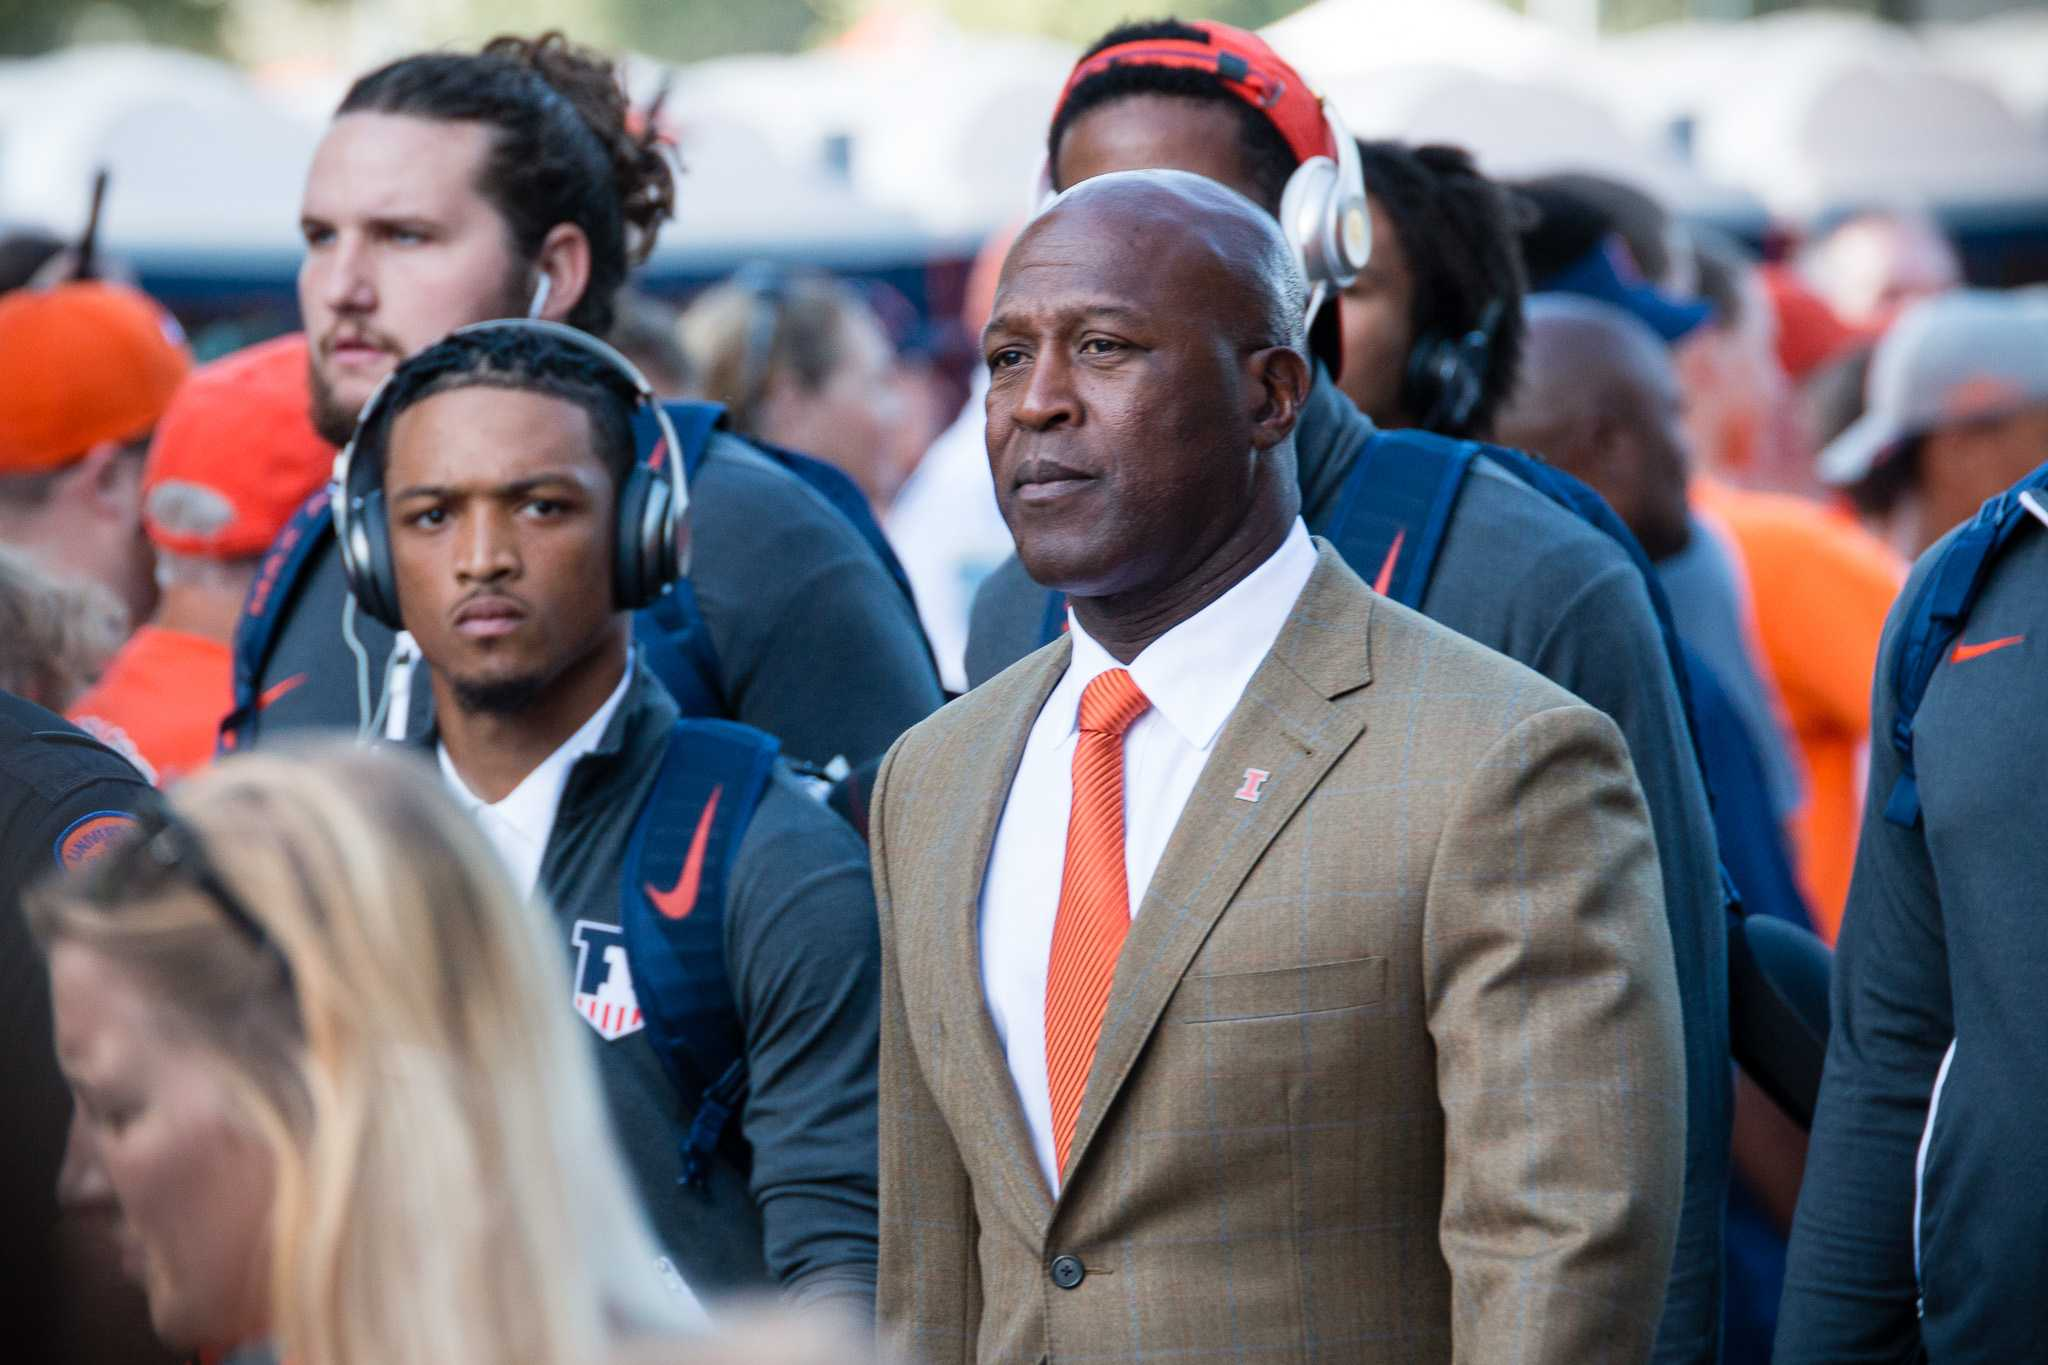 Illinois head coach Lovie Smith walks down First Street before the game against North Carolina at Memorial Stadium on Sept. 10, 2016.